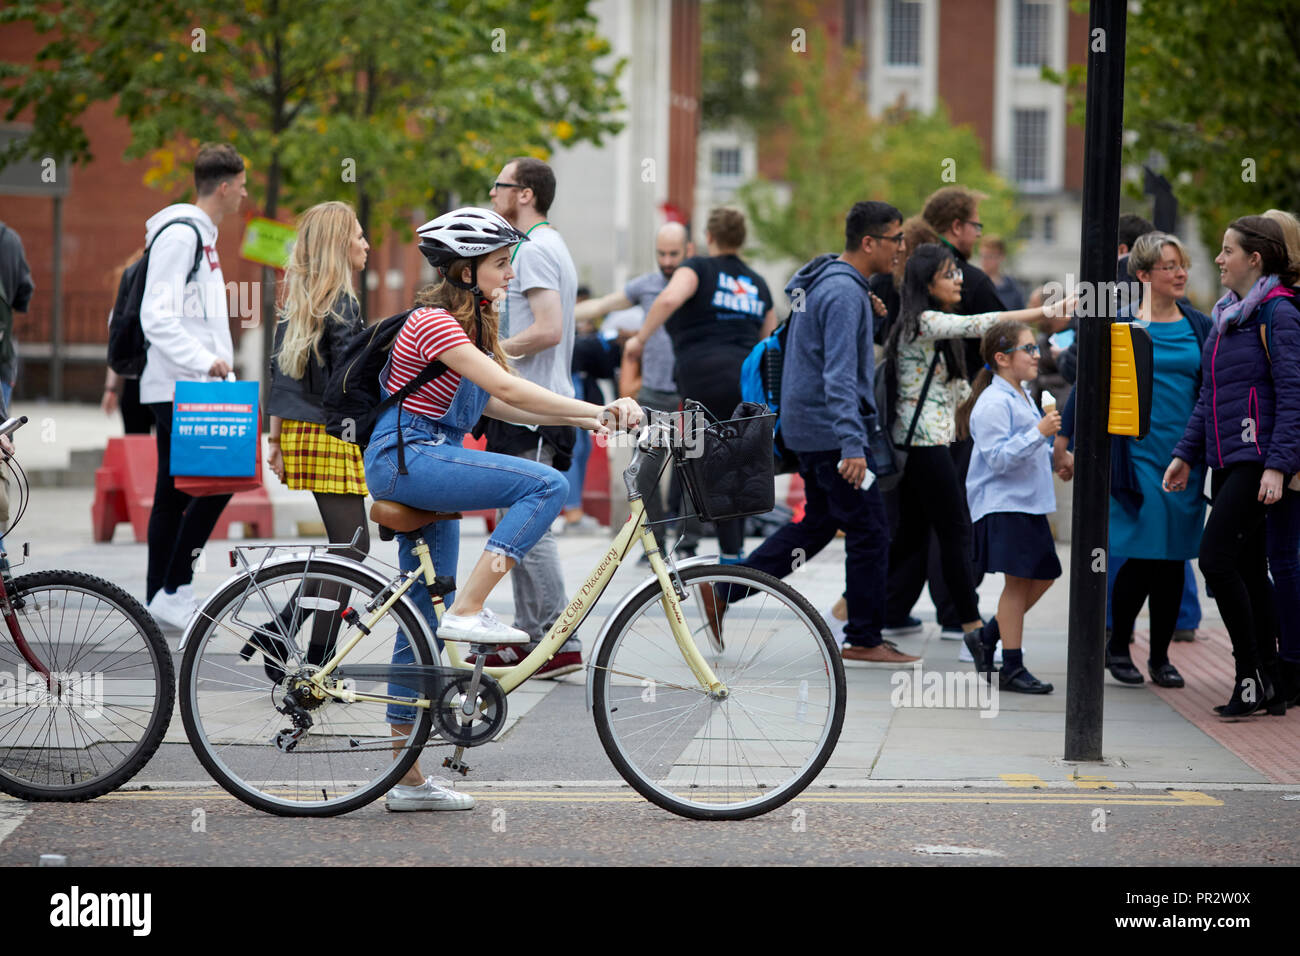 Manchester Oxford Road cycle lane, lady cyclist waiting at red light - Stock Image